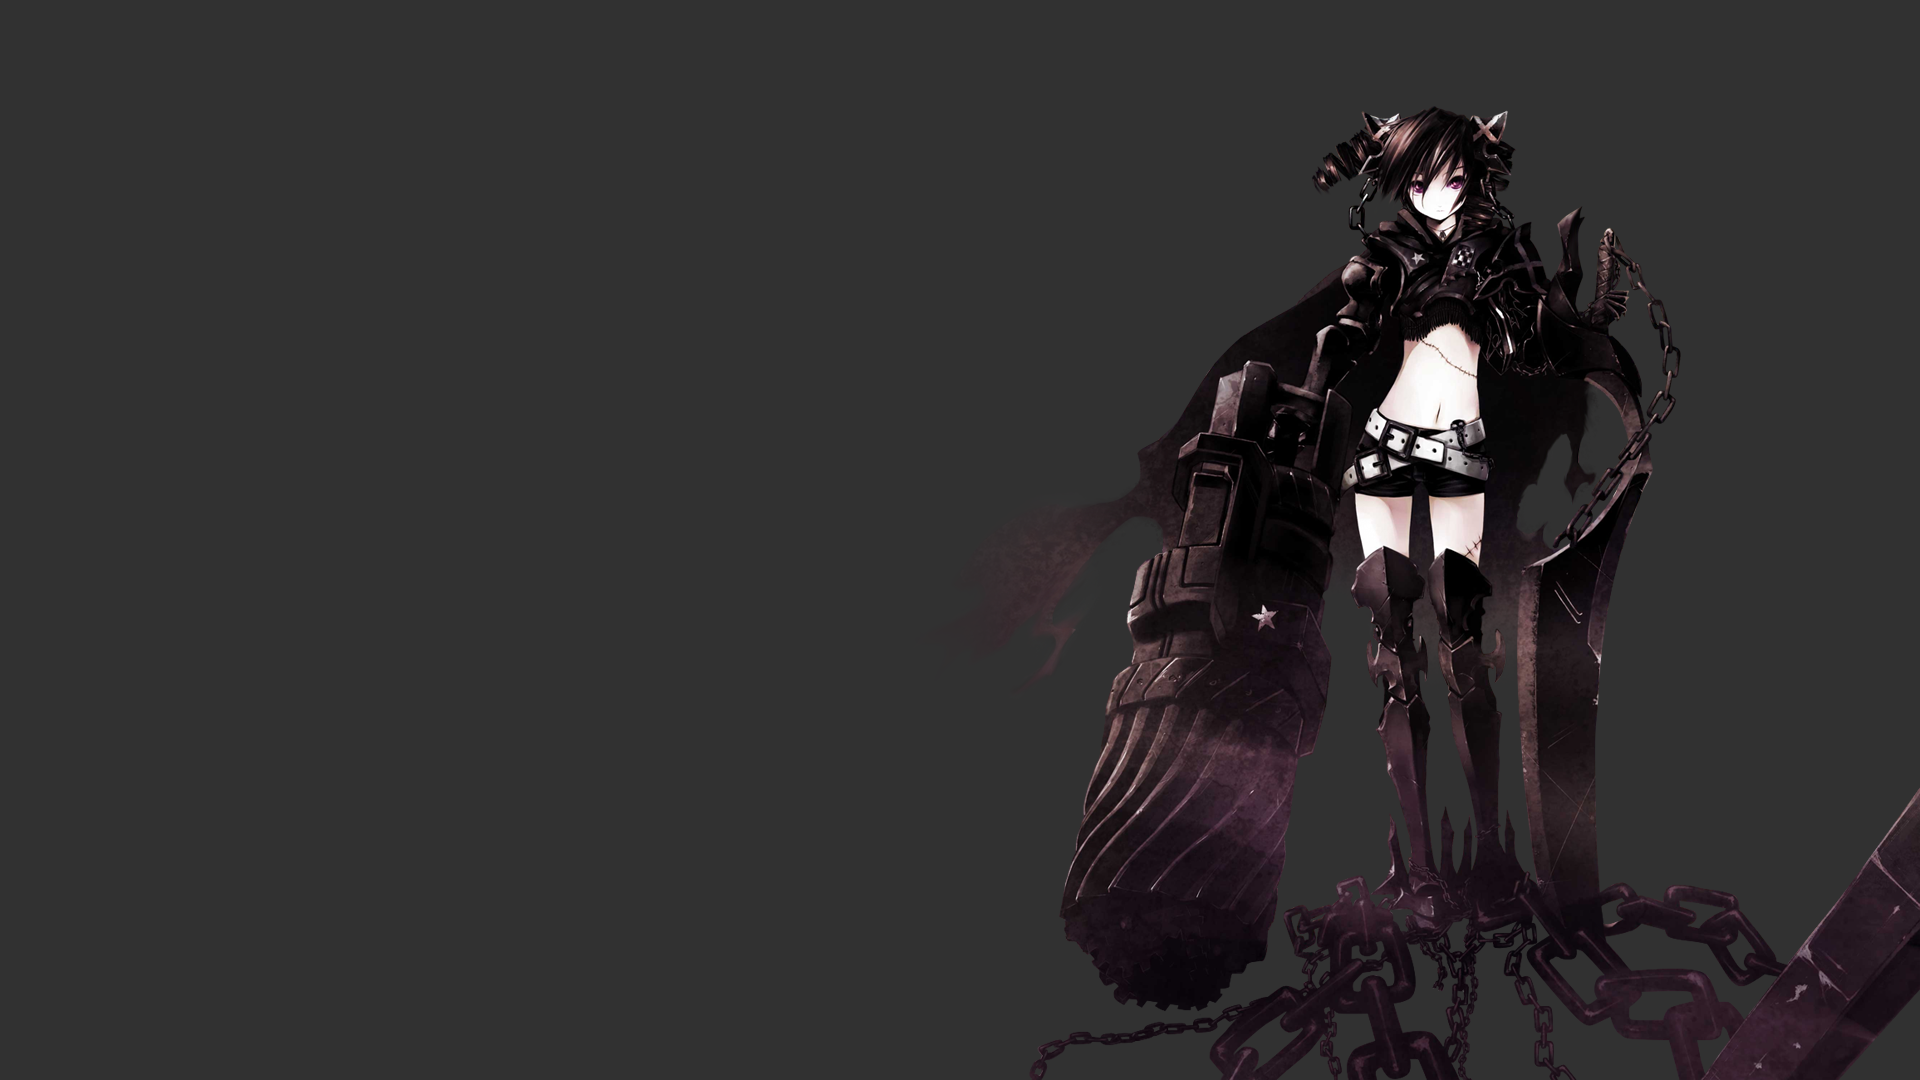 Black rock shooter full hd wallpaper and background image - Anime girl full hd ...